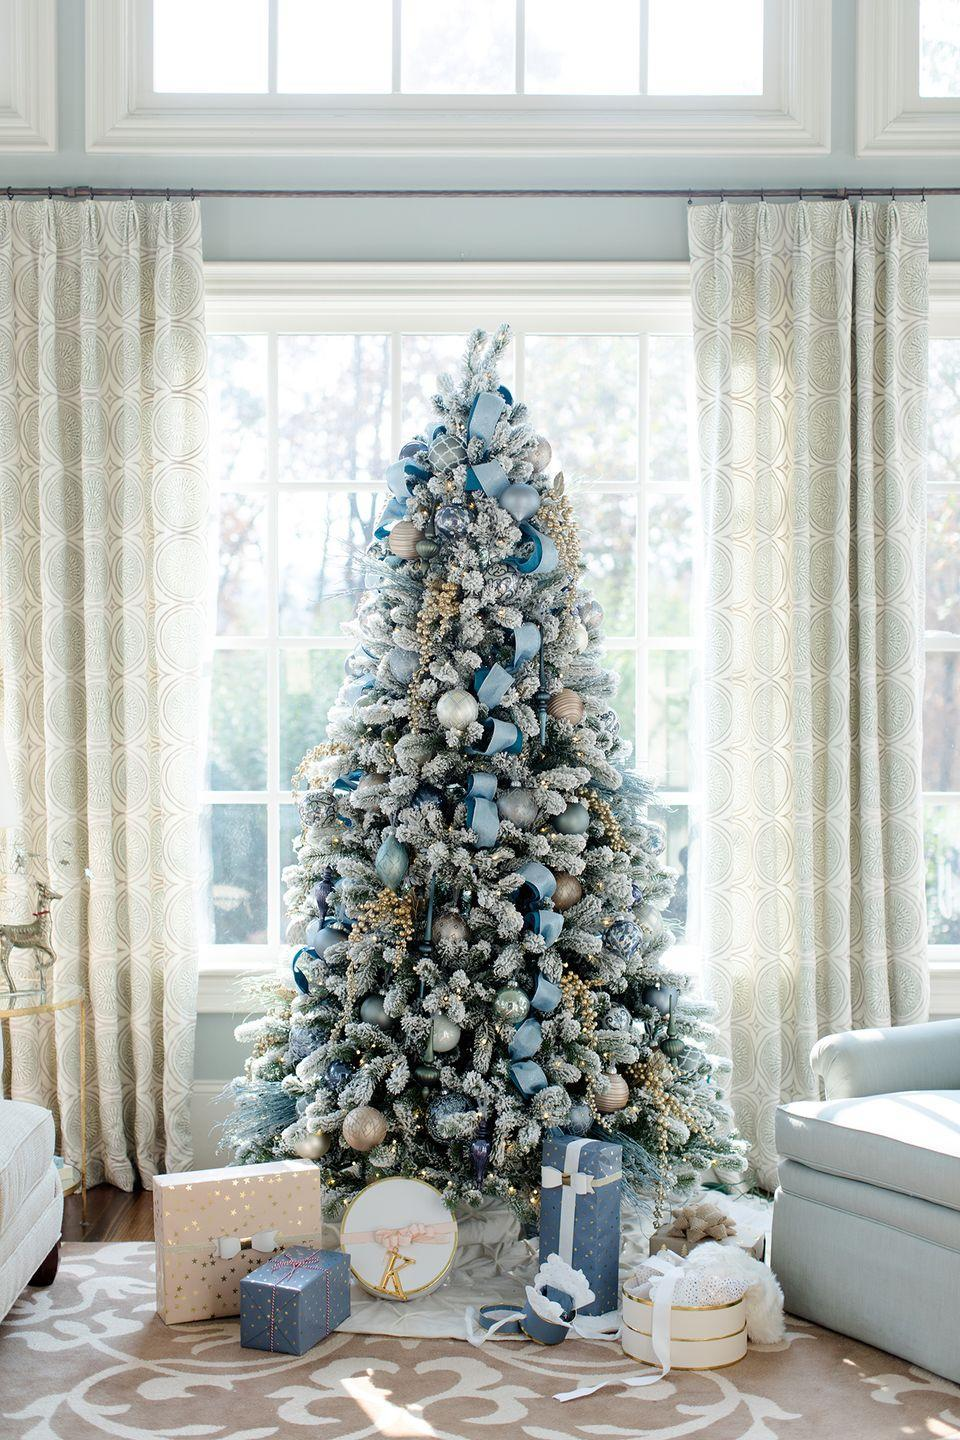 "<p>Whether you are looking for the perfect tree to match your <a href=""https://www.elledecor.com/design-decorate/room-ideas/g10302655/coastal-decor/"" rel=""nofollow noopener"" target=""_blank"" data-ylk=""slk:coastal decor"" class=""link rapid-noclick-resp"">coastal decor</a> or just prefer an unexpected holiday color scheme, a blue Christmas tree is always a beautiful choice. Kelly Page of <a href=""http://www.bluegraygal.com/blue-christmas-decorating-ideas/"" rel=""nofollow noopener"" target=""_blank"" data-ylk=""slk:bluegraygal"" class=""link rapid-noclick-resp"">bluegraygal</a> used blue and silver glass ornaments and gold garland to tie this tree into her existing decor. </p>"